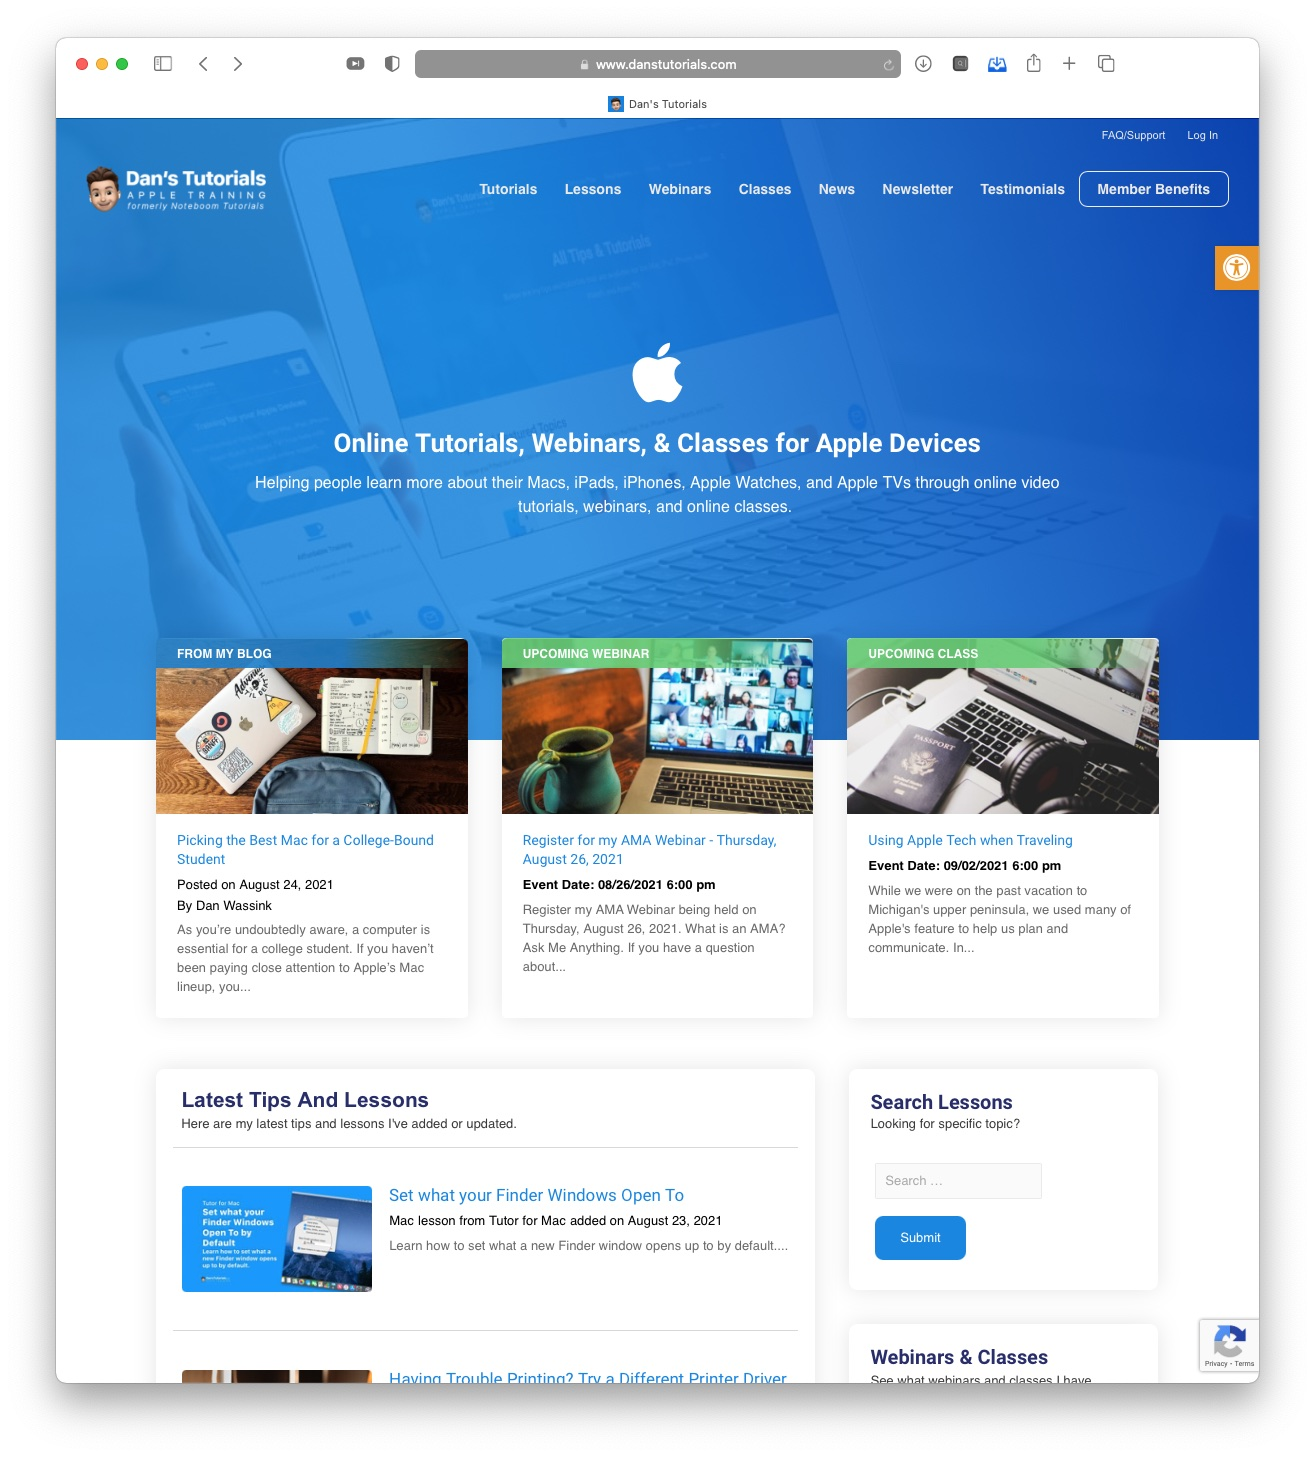 Over 1,500 Mac, iPad, and iPhone Lessons are now Free on Dan's Tutorials Image